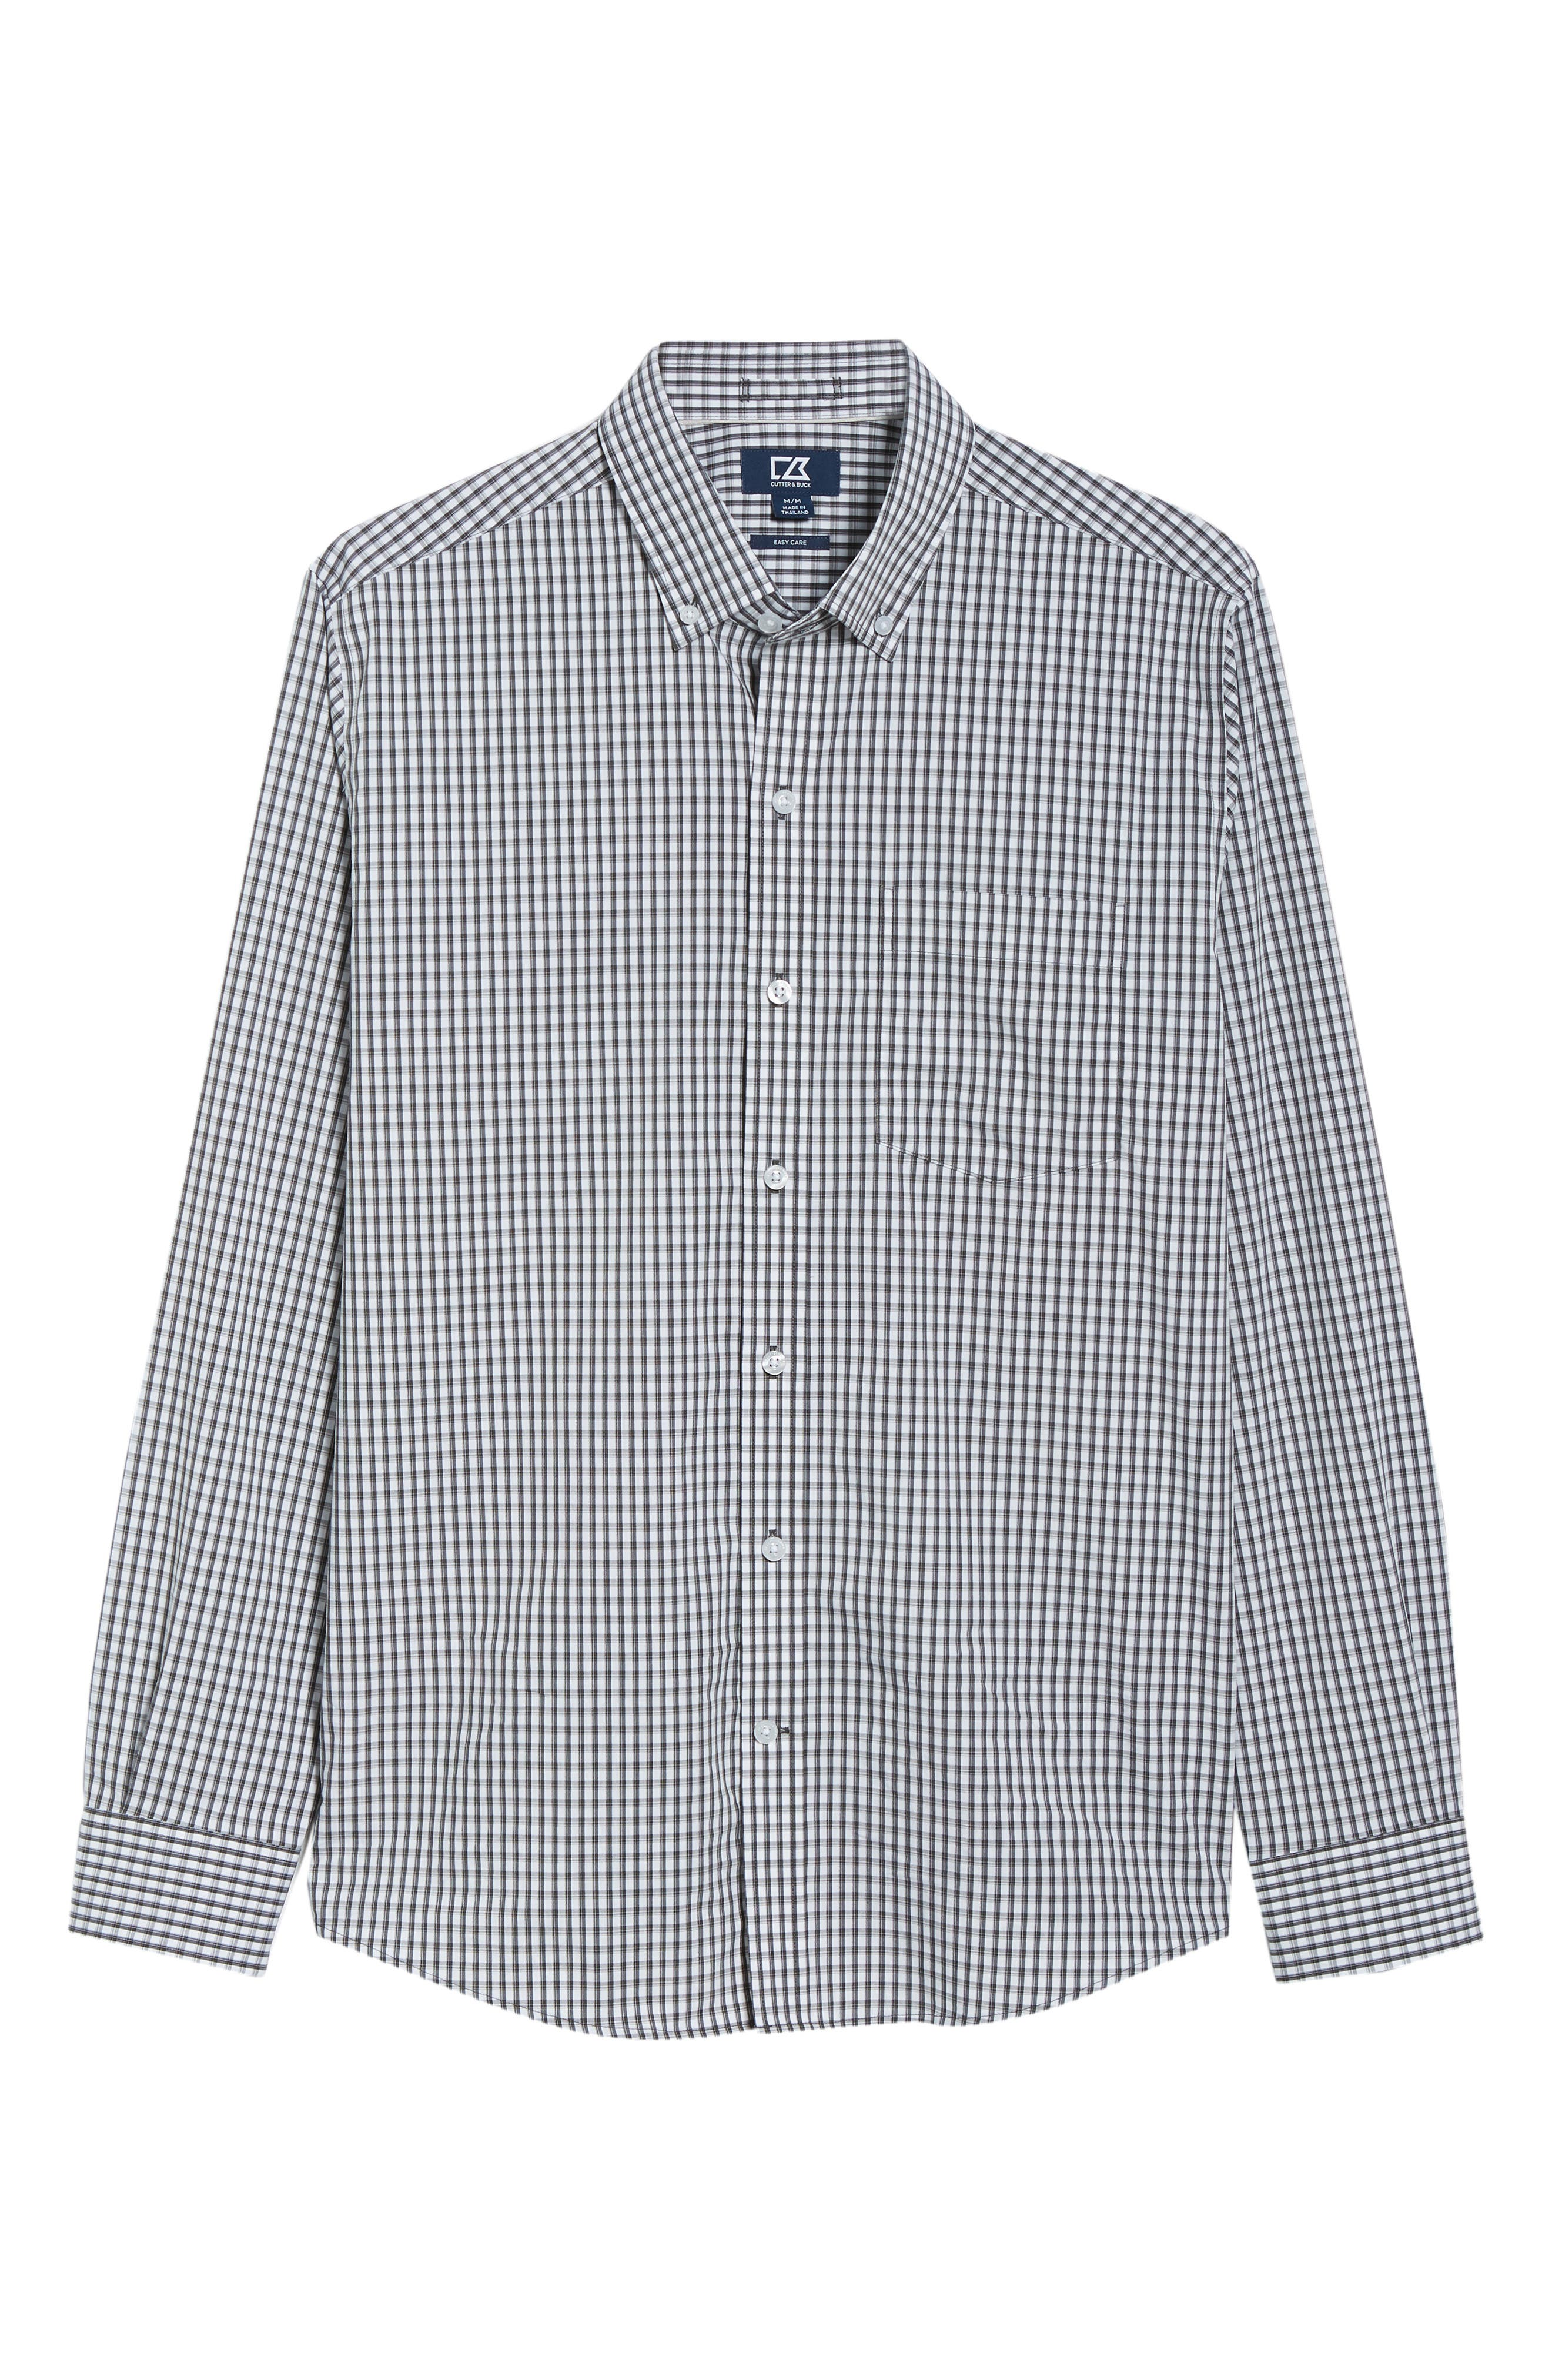 Regular Fit Gingham Non-Iron Sport Shirt,                             Alternate thumbnail 5, color,                             CHARCOAL